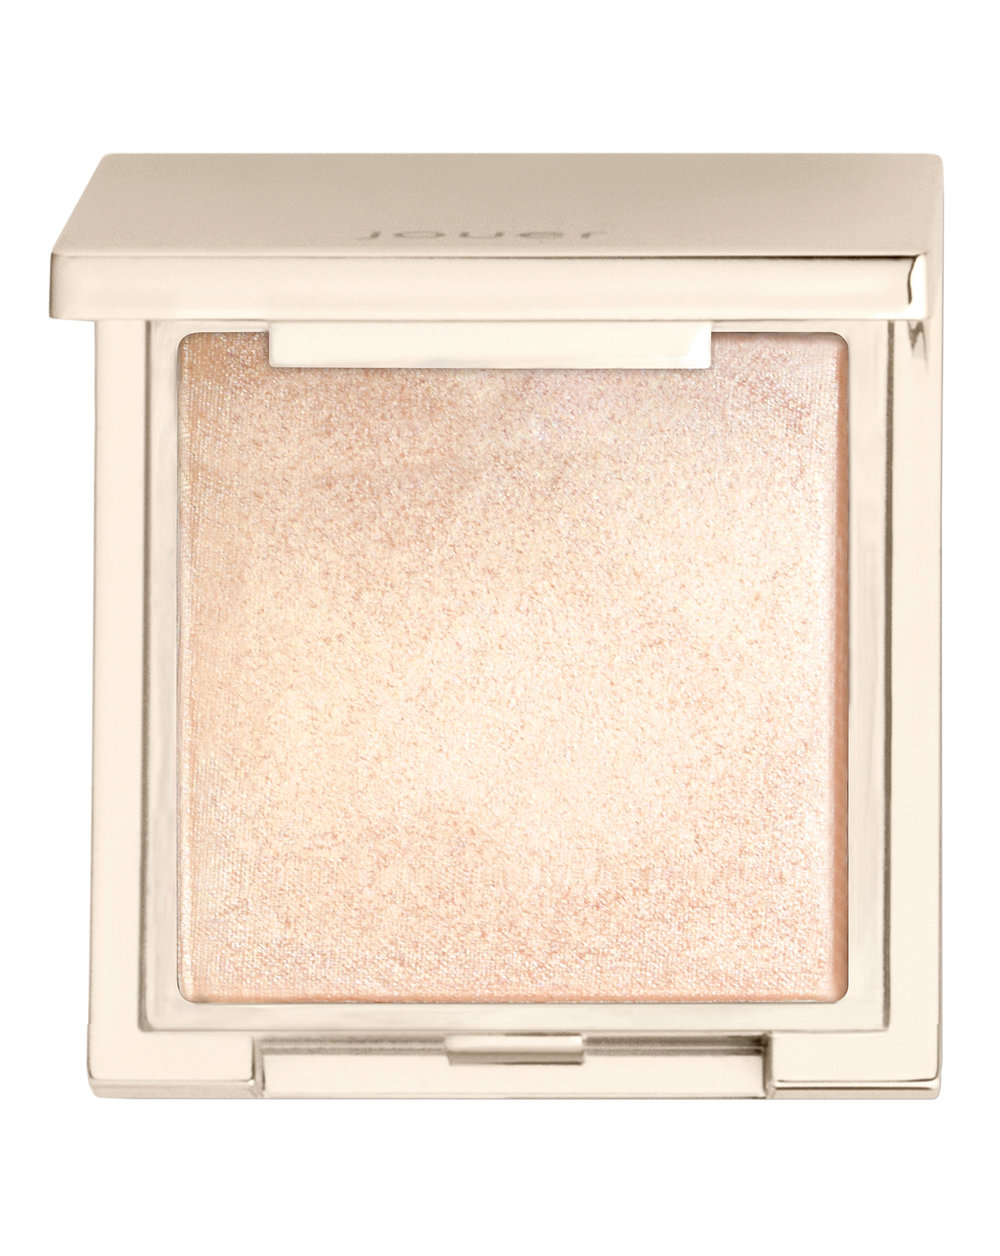 Jouer - Powder Highlighter ($24) - I've heard really great things about this highlighter and about Jouer products in general, but it was never a super accessible brand (especially living in Hawaii). So, I'm really excited they're now in Sephora!